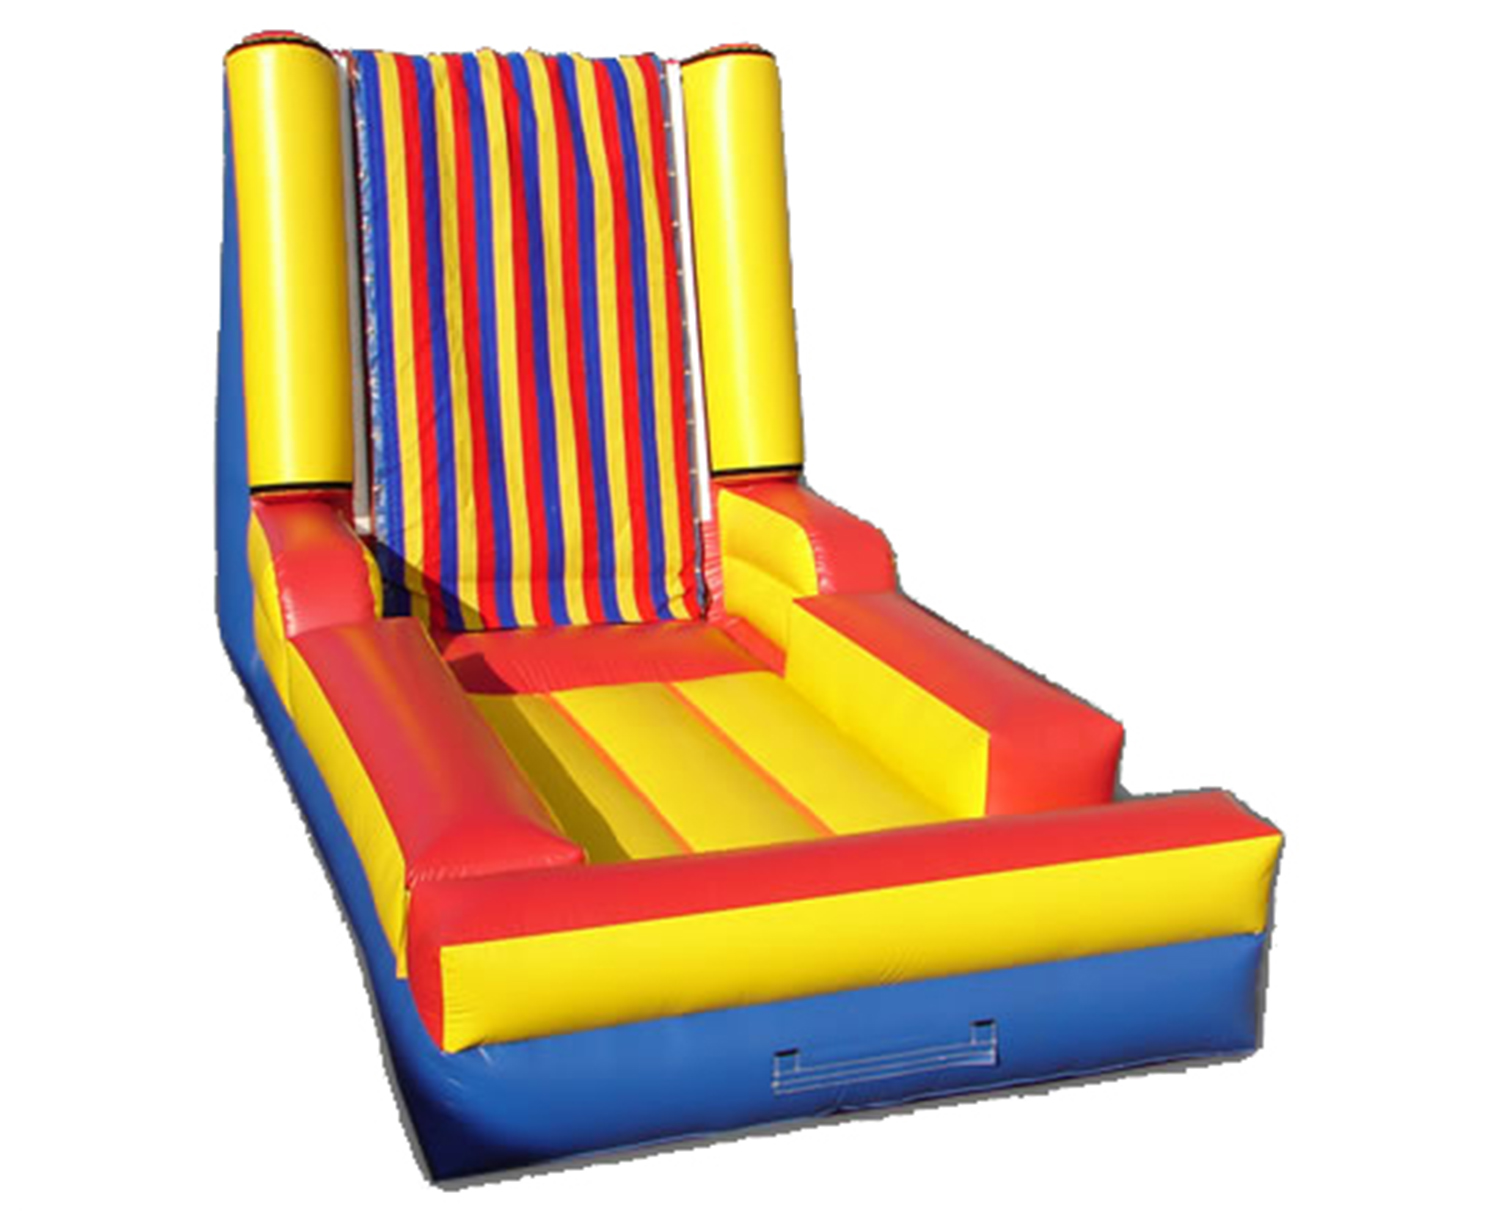 Super Velcro Wall - $249.00 ALL DAY RENTAL